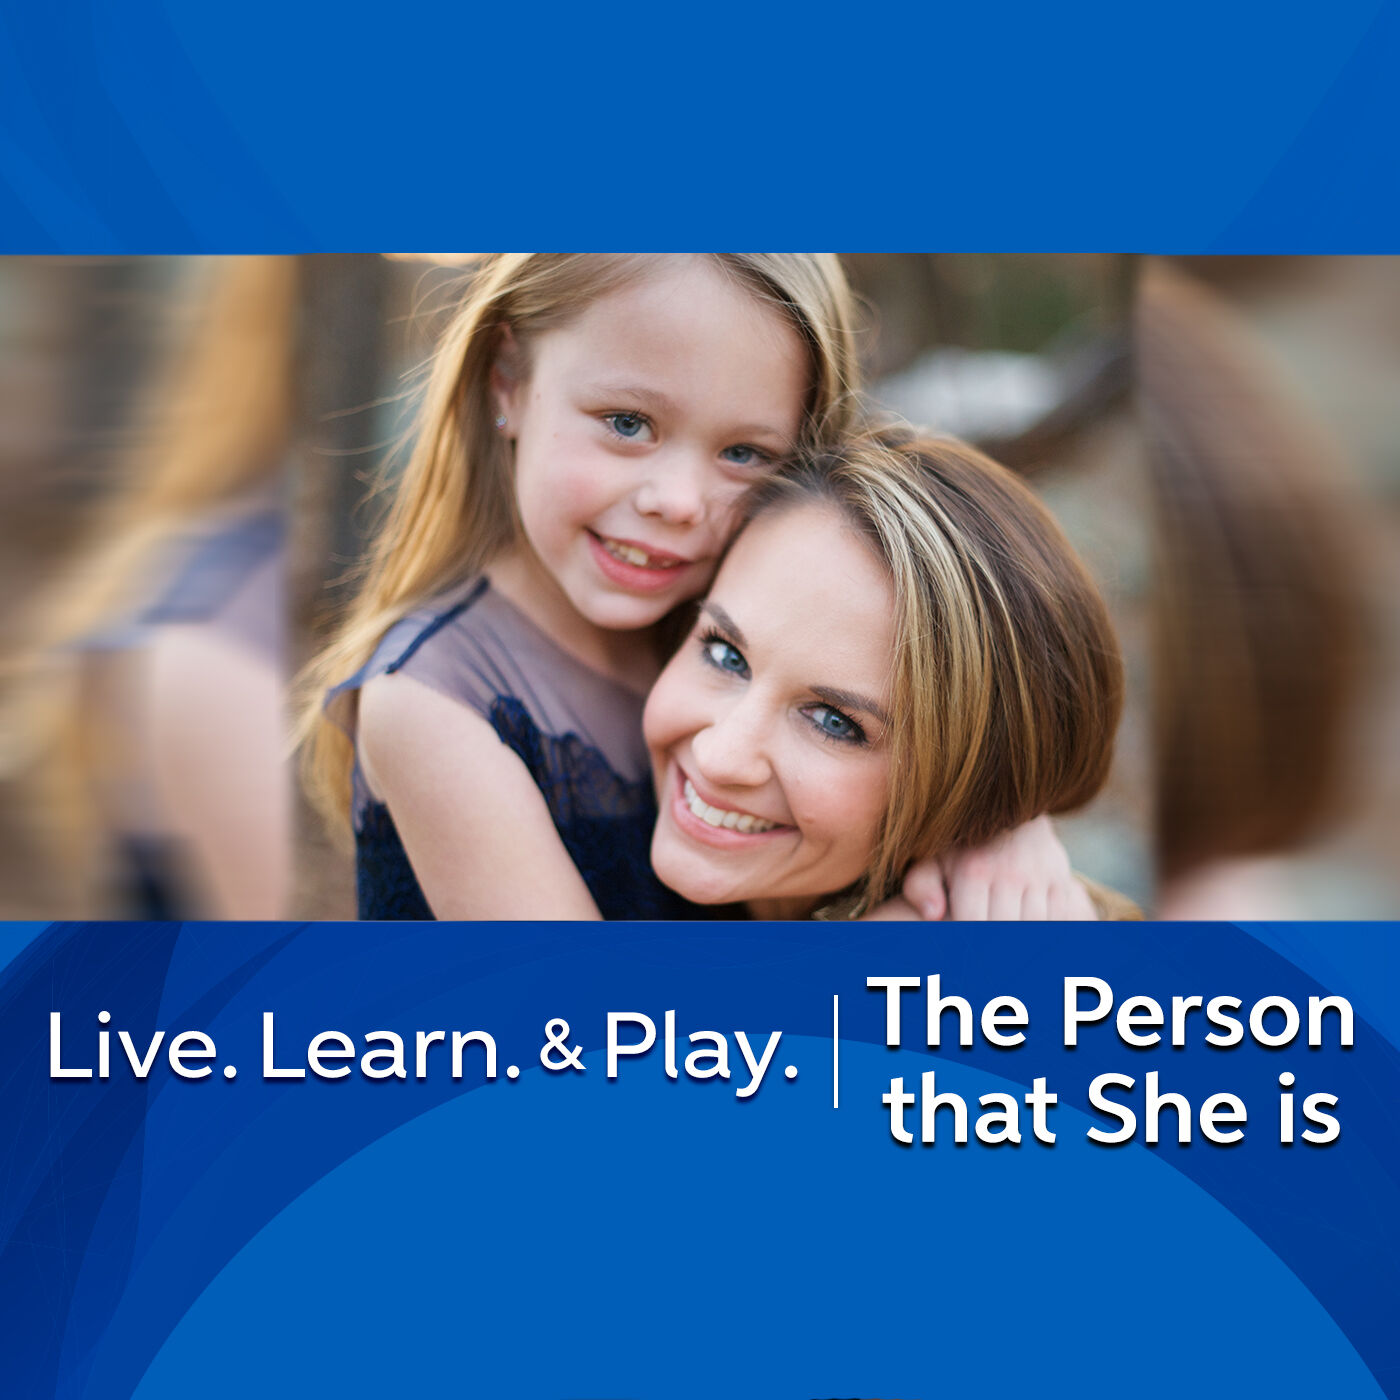 The Person that She is